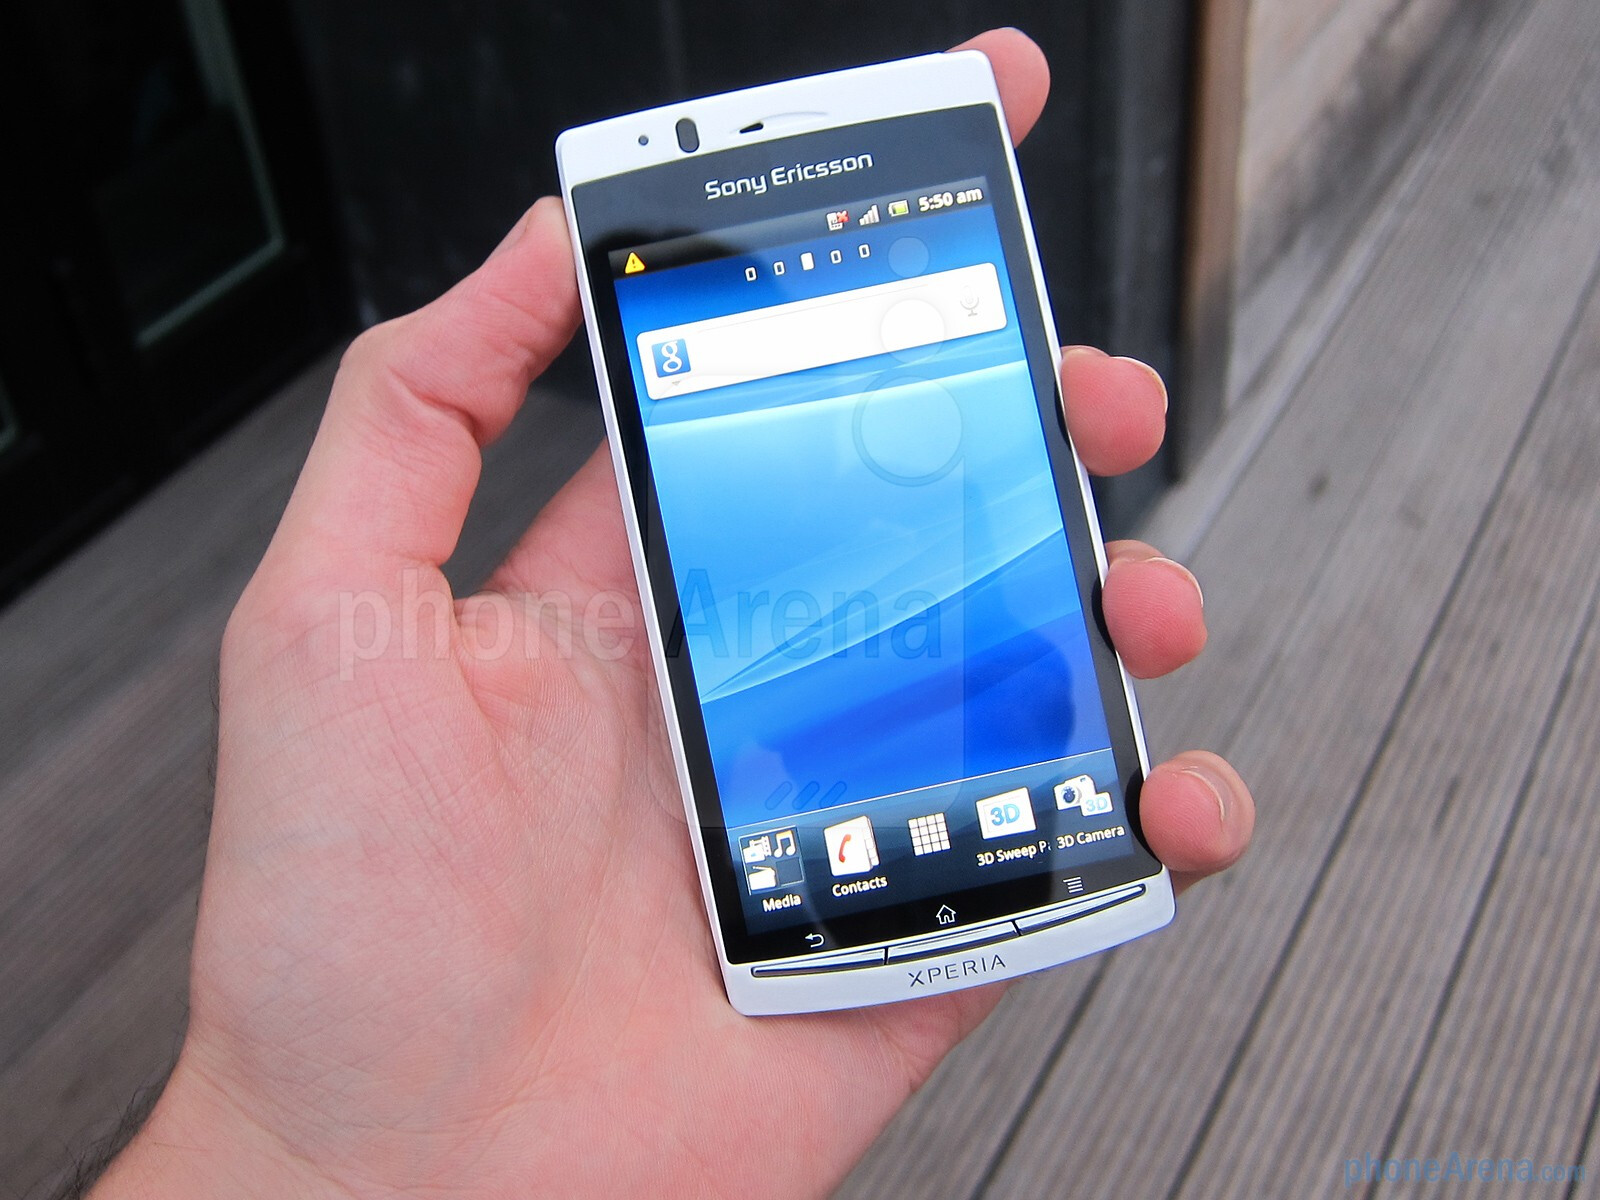 Sony Ericsson Xperia Arc S Hands On Phonearena Reviews